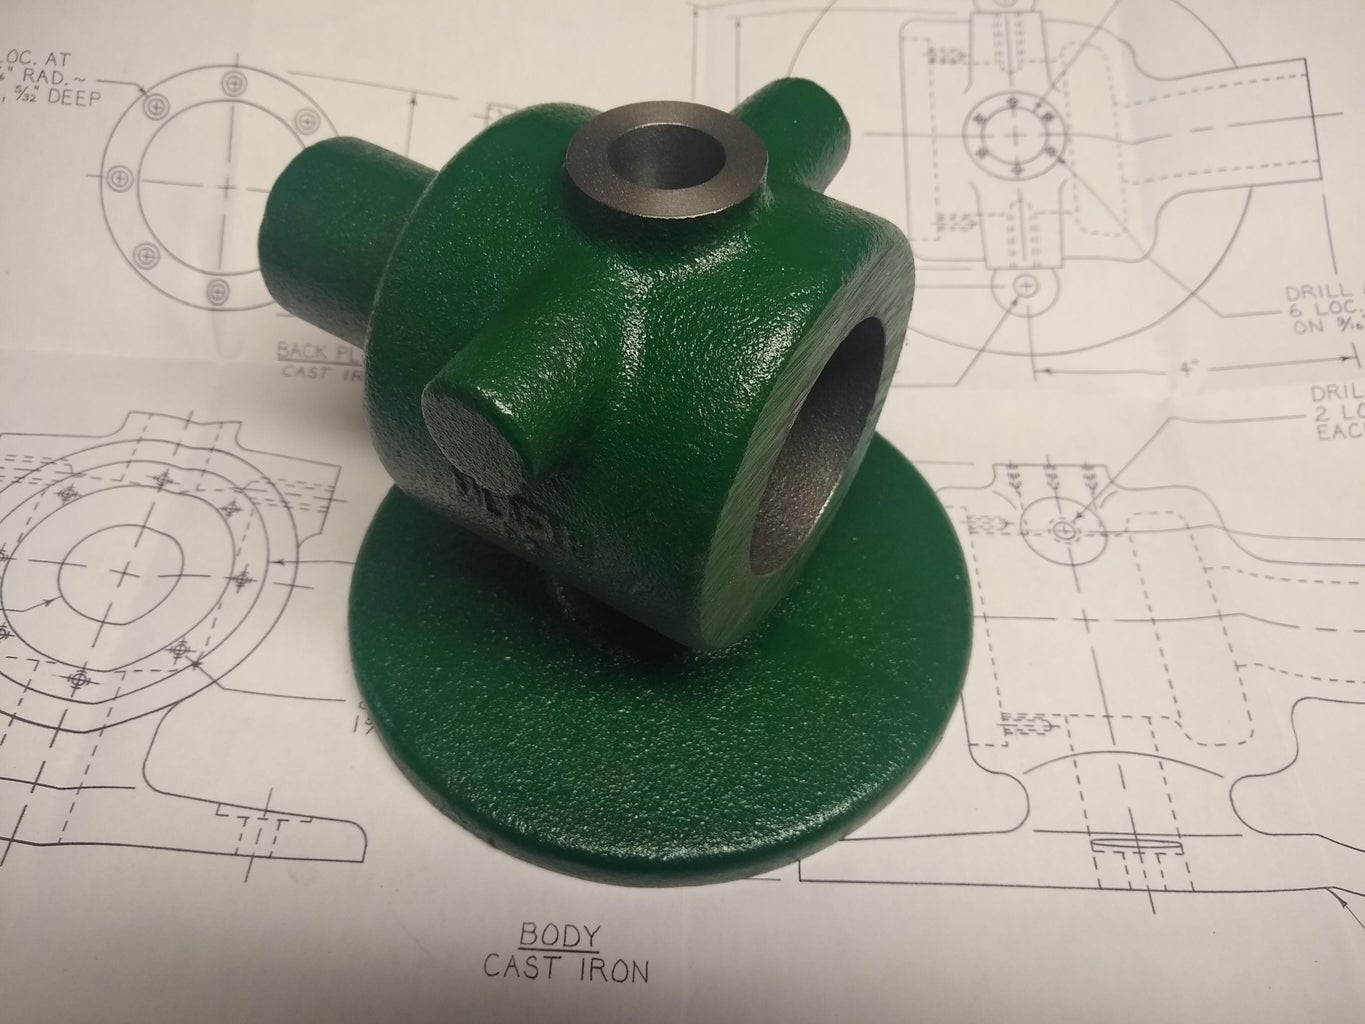 Body - Base Flange and File Shaft Bore